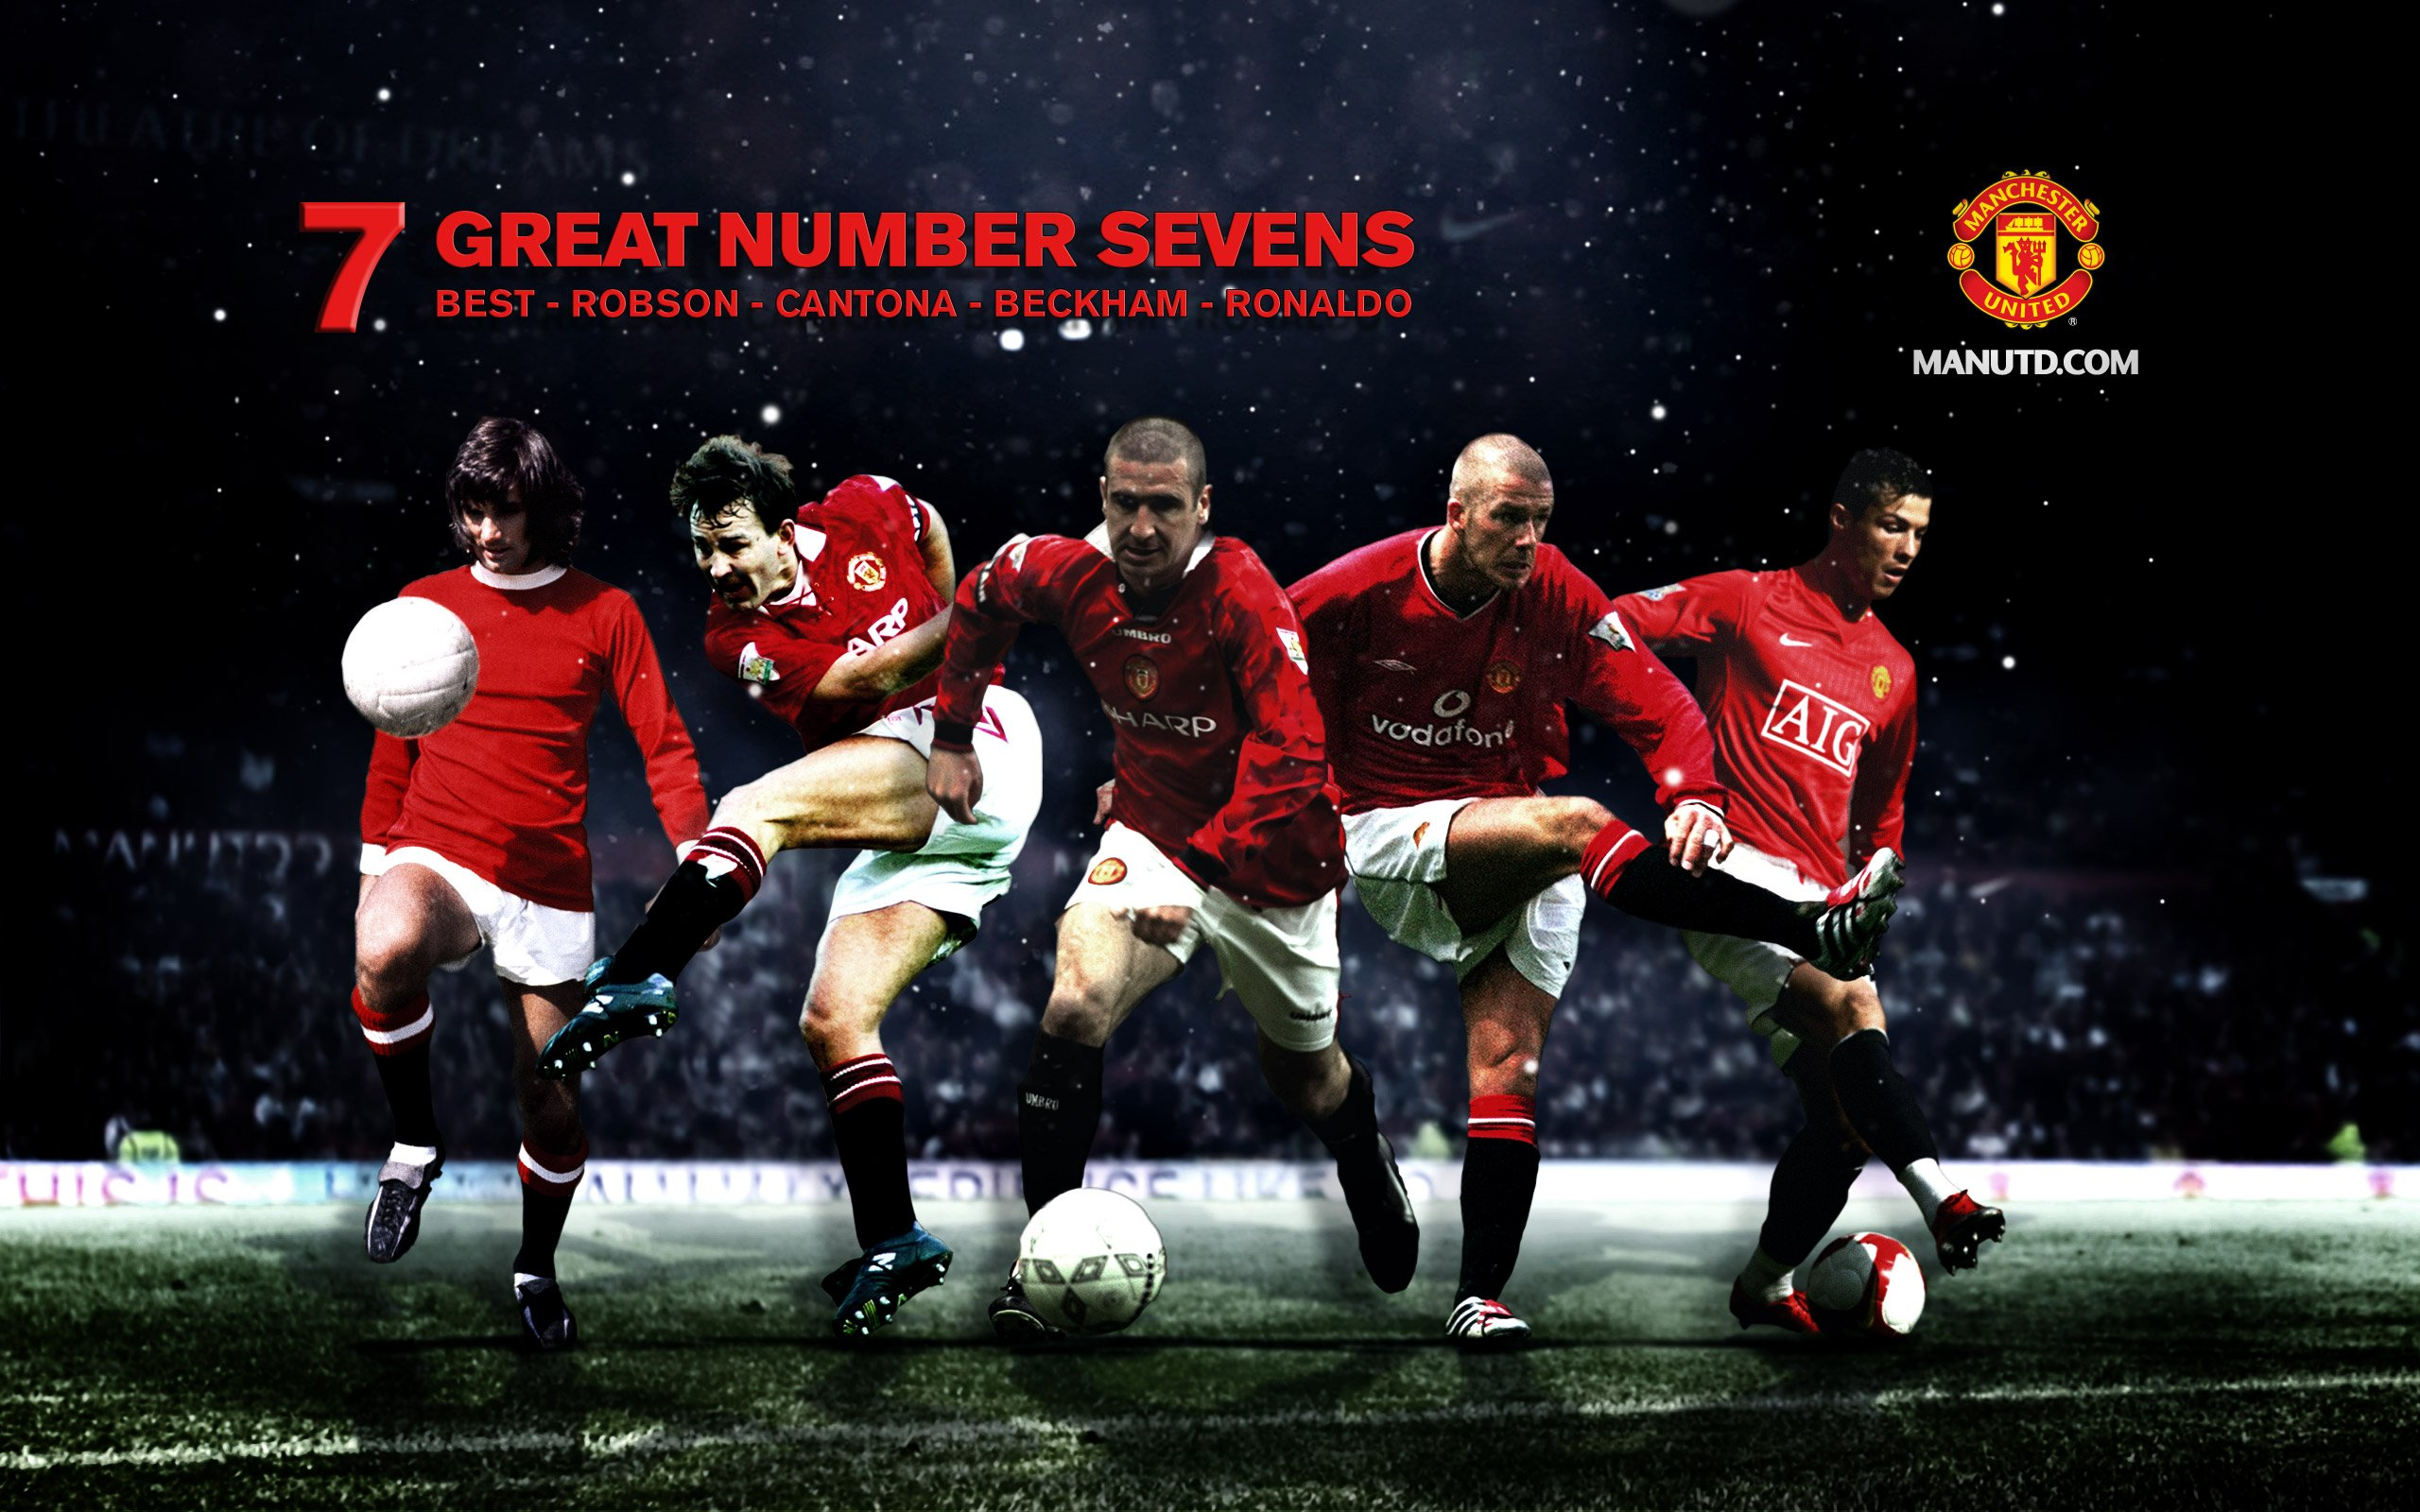 Manchester United Iphone Wallpaper Hd Manchester United Premier Soccer Wallpaper 2560x1600